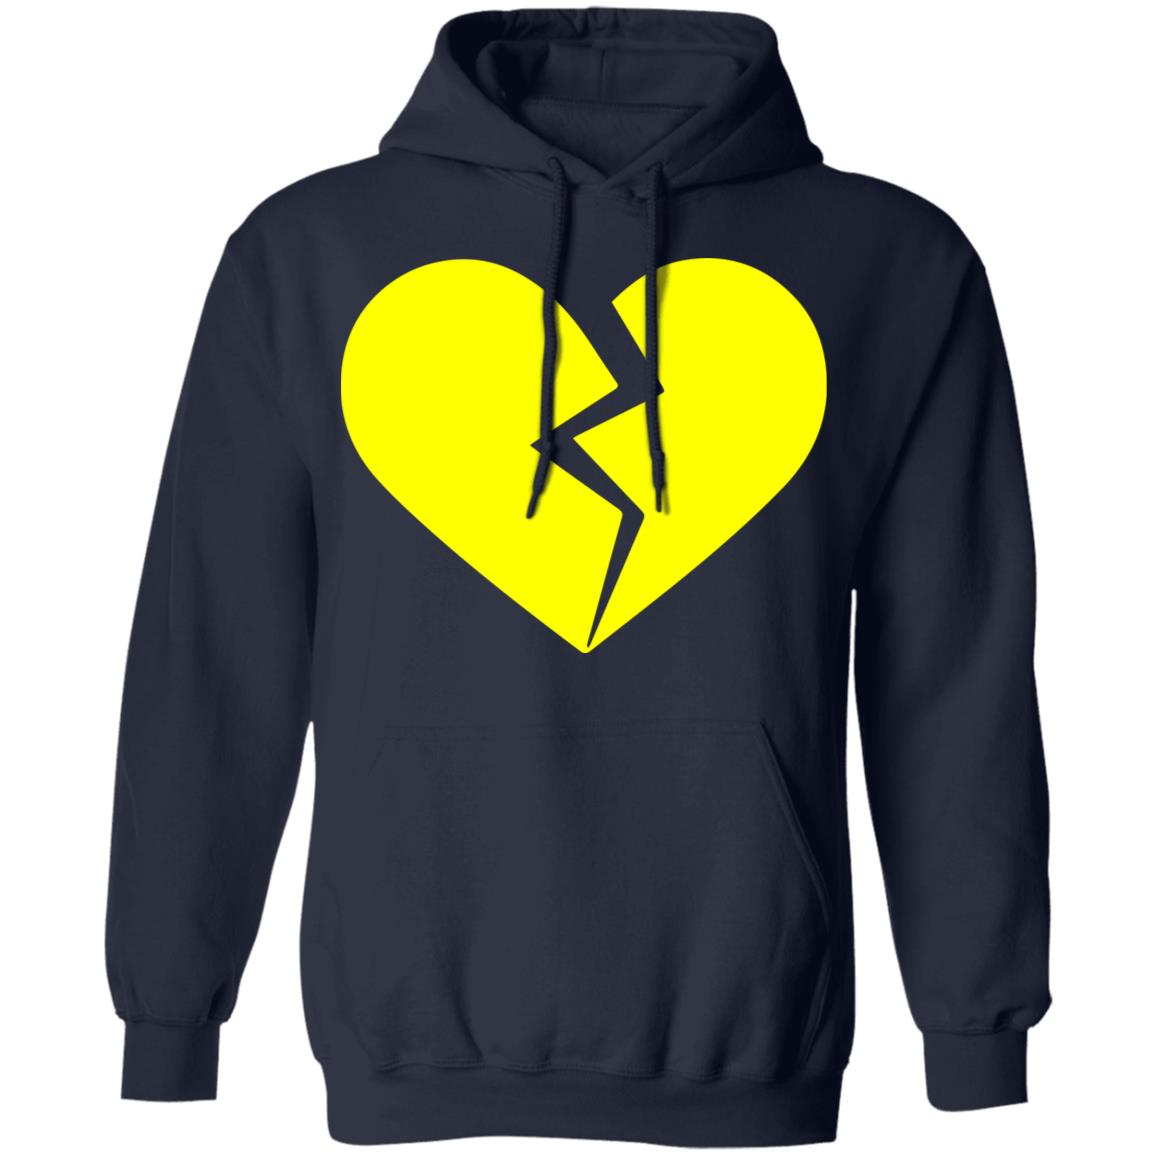 Marcus Lemonis Broken Heart Shirt, Long Sleeve, Hoodie.